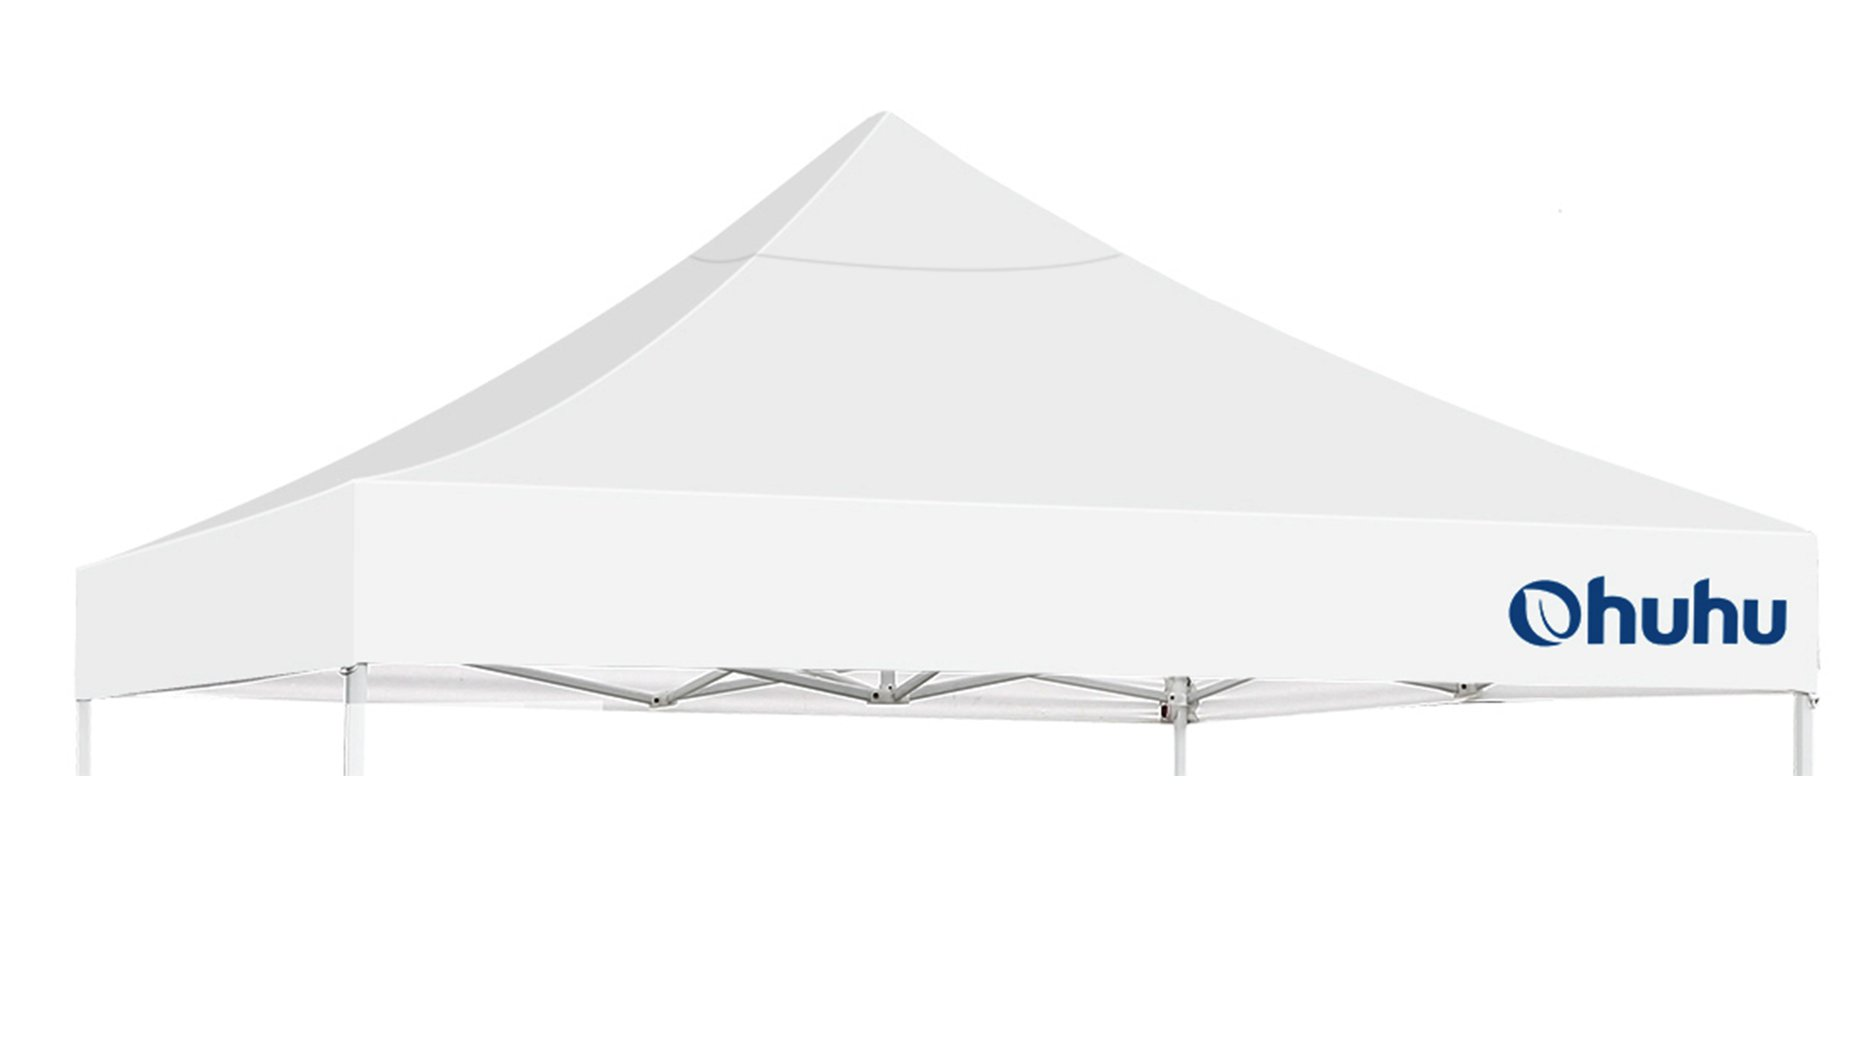 Ohuhu Gazebo Canopy Top Cover Replacement For Ohuhu Pop up 10 X 10 Feet Straight Leg Canopy Tent Only by Ohuhu